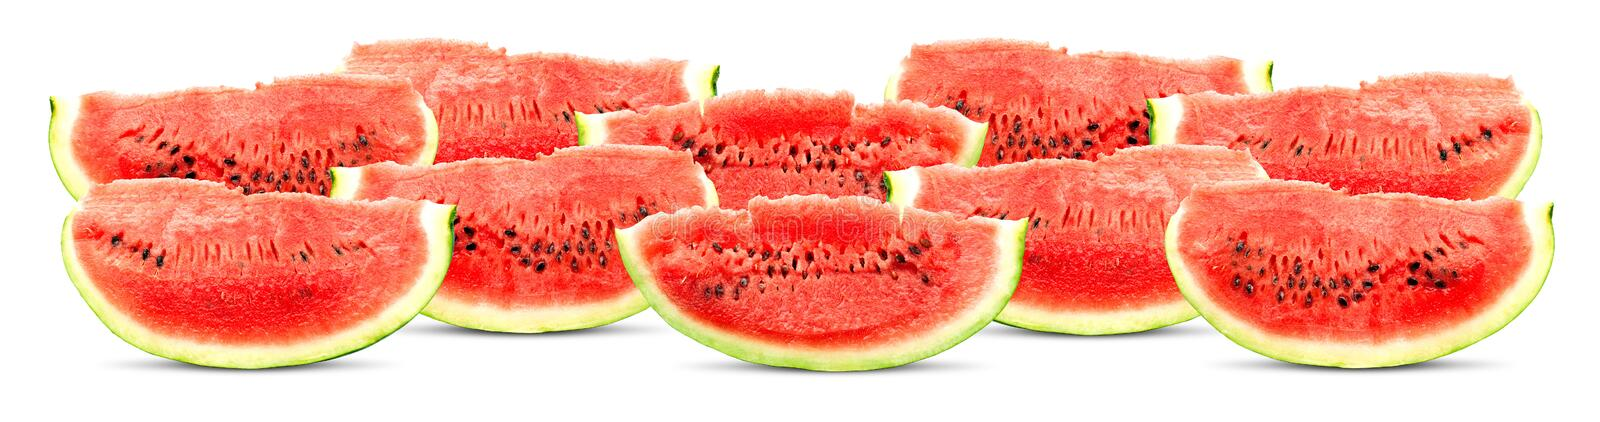 Download Big red watermelon stock image. Image of striped, snack - 14859347